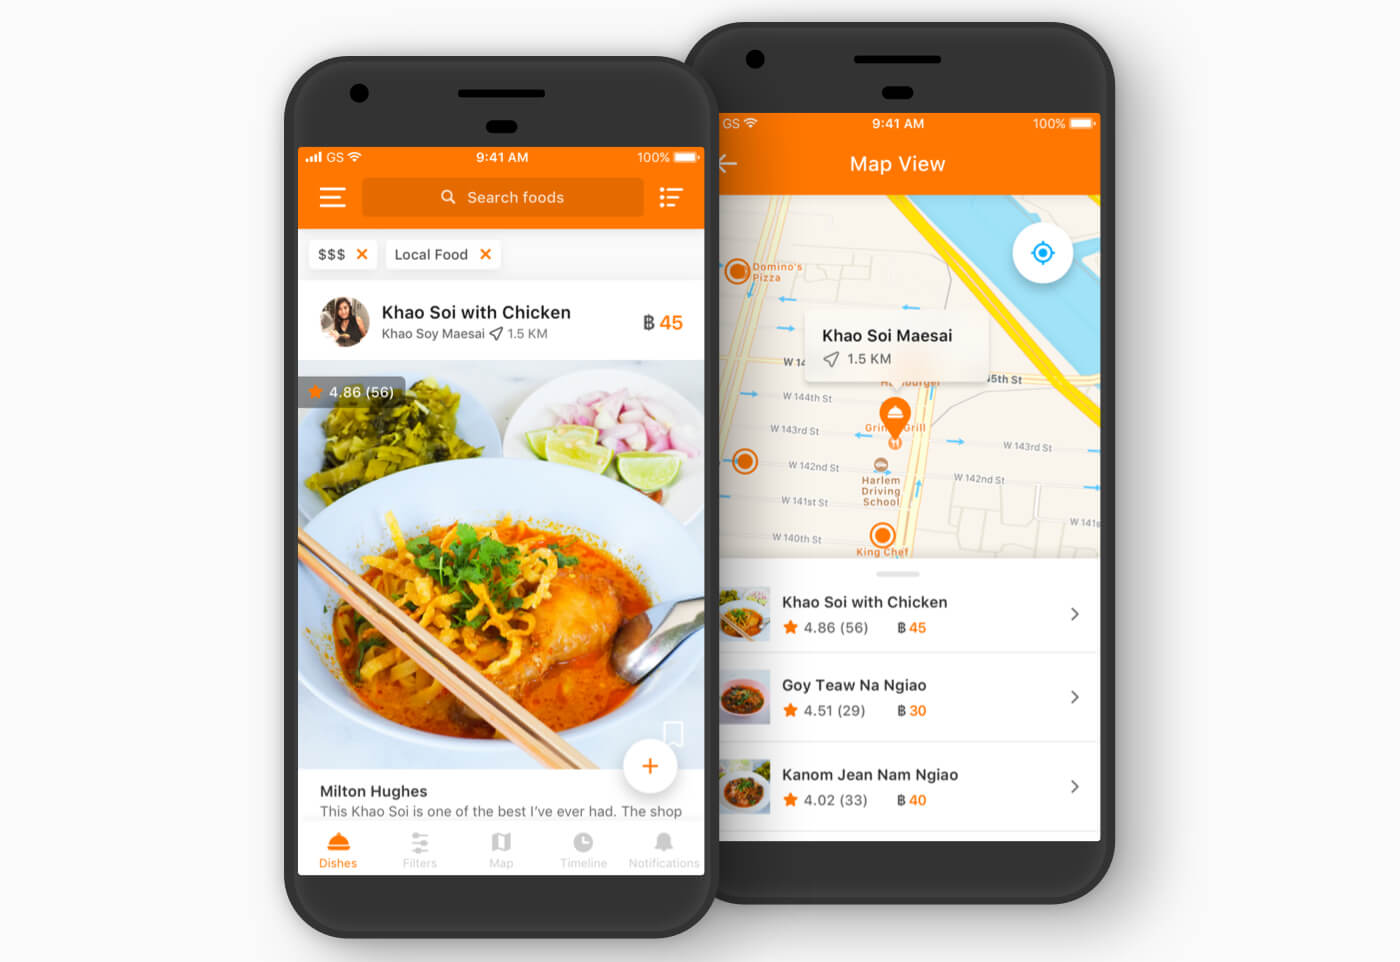 Download TopTravelFoods app